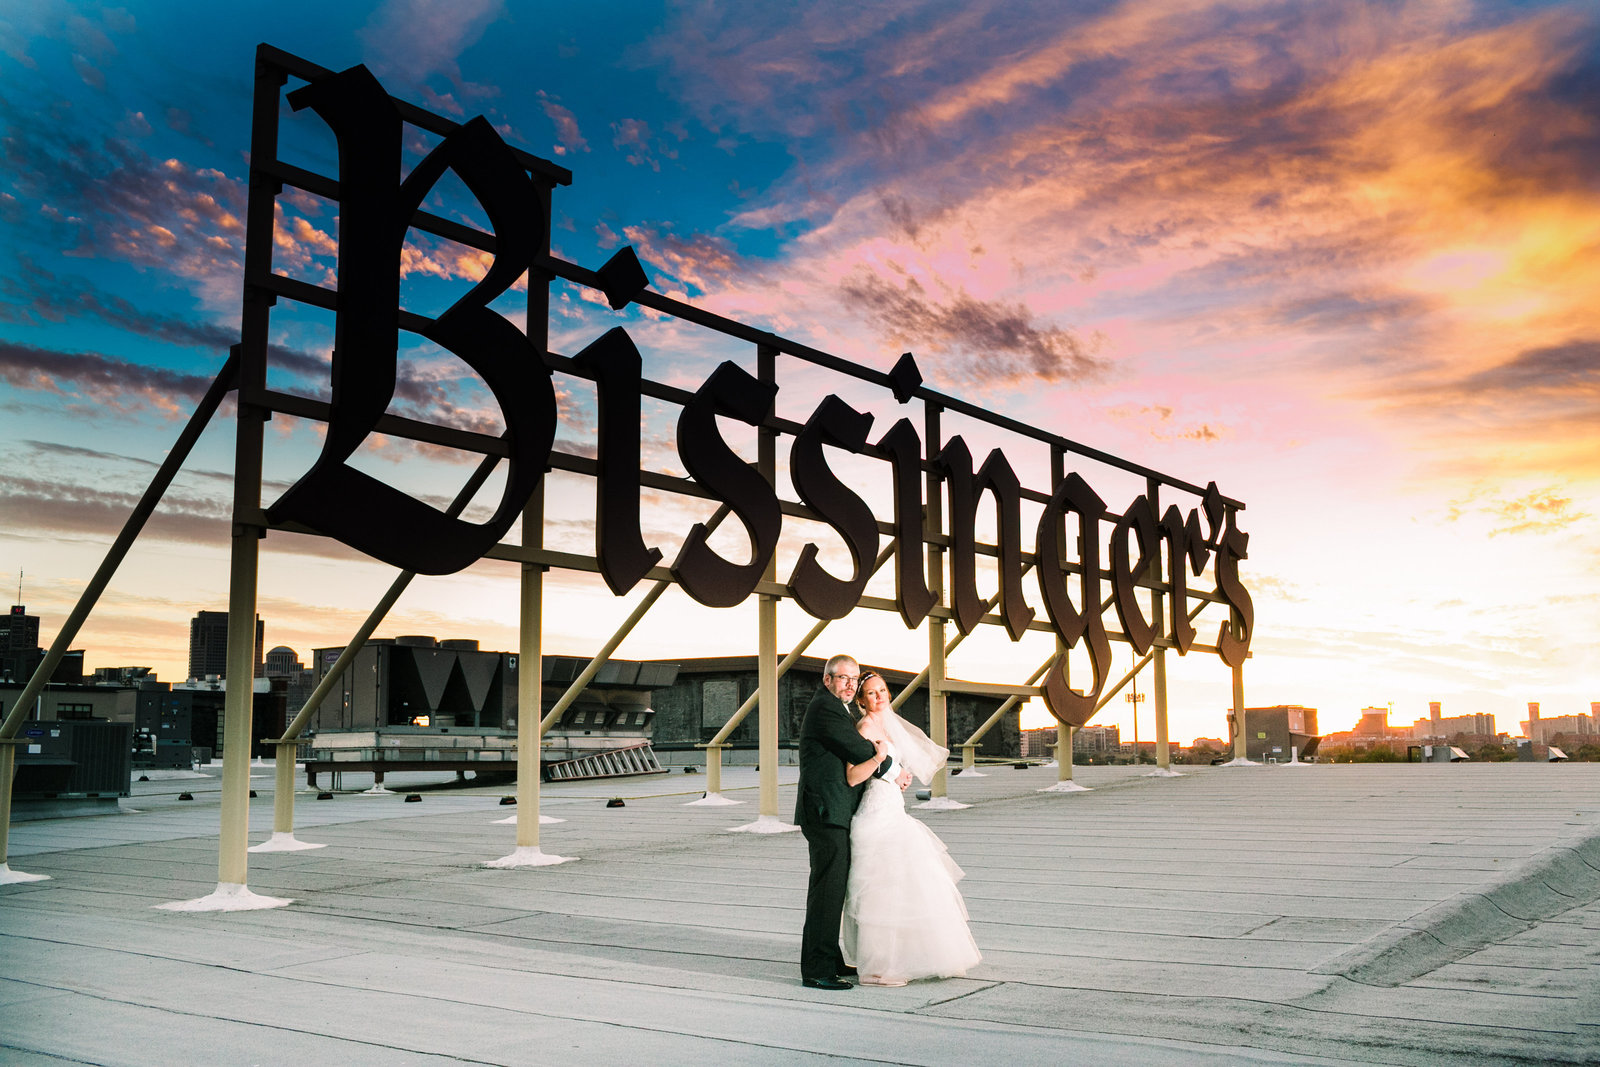 Bride and Groom, Sarah and Chris, stand on the rooftop of Bissinger's Caramel Room with their sign in the background and a blue and orange sunset.